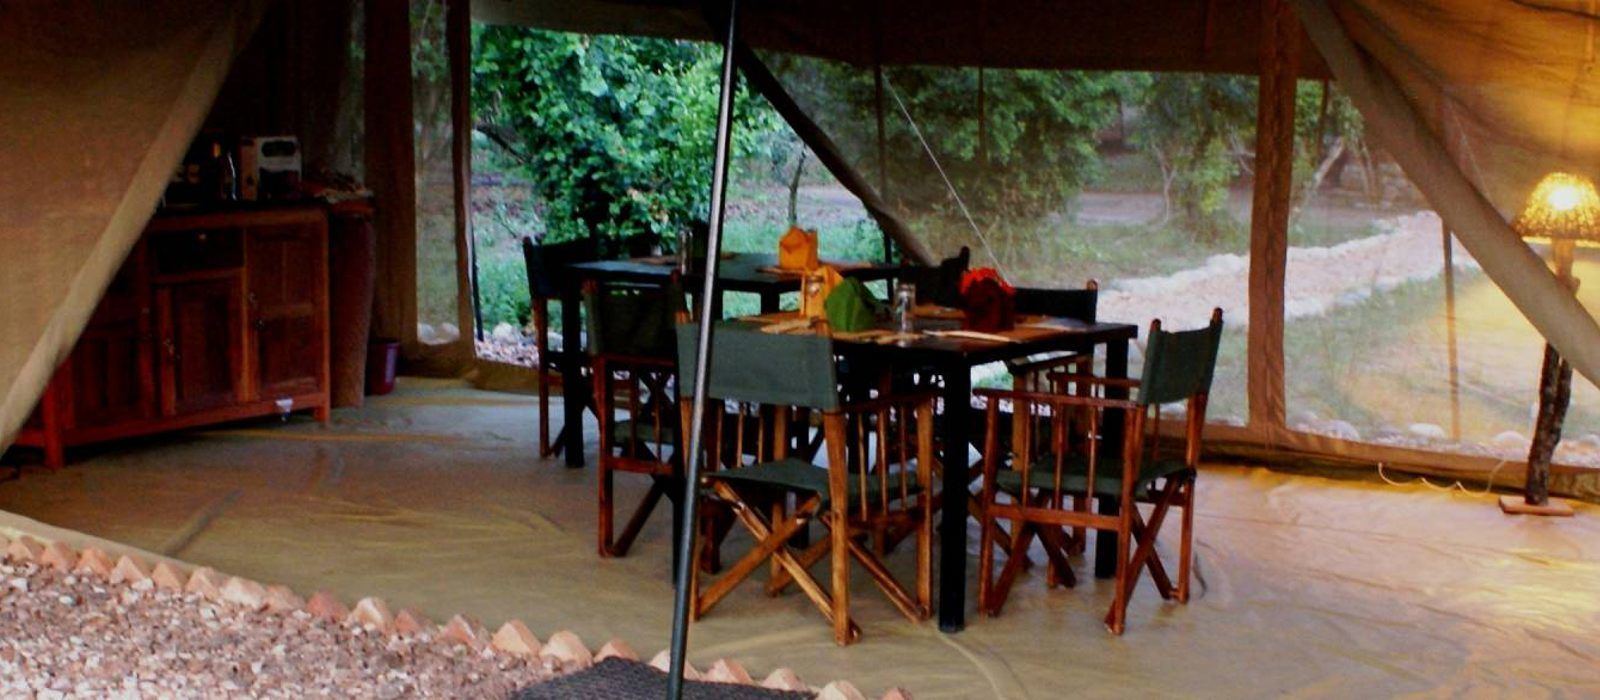 Hotel Queen Elizabeth Bush Lodge Uganda